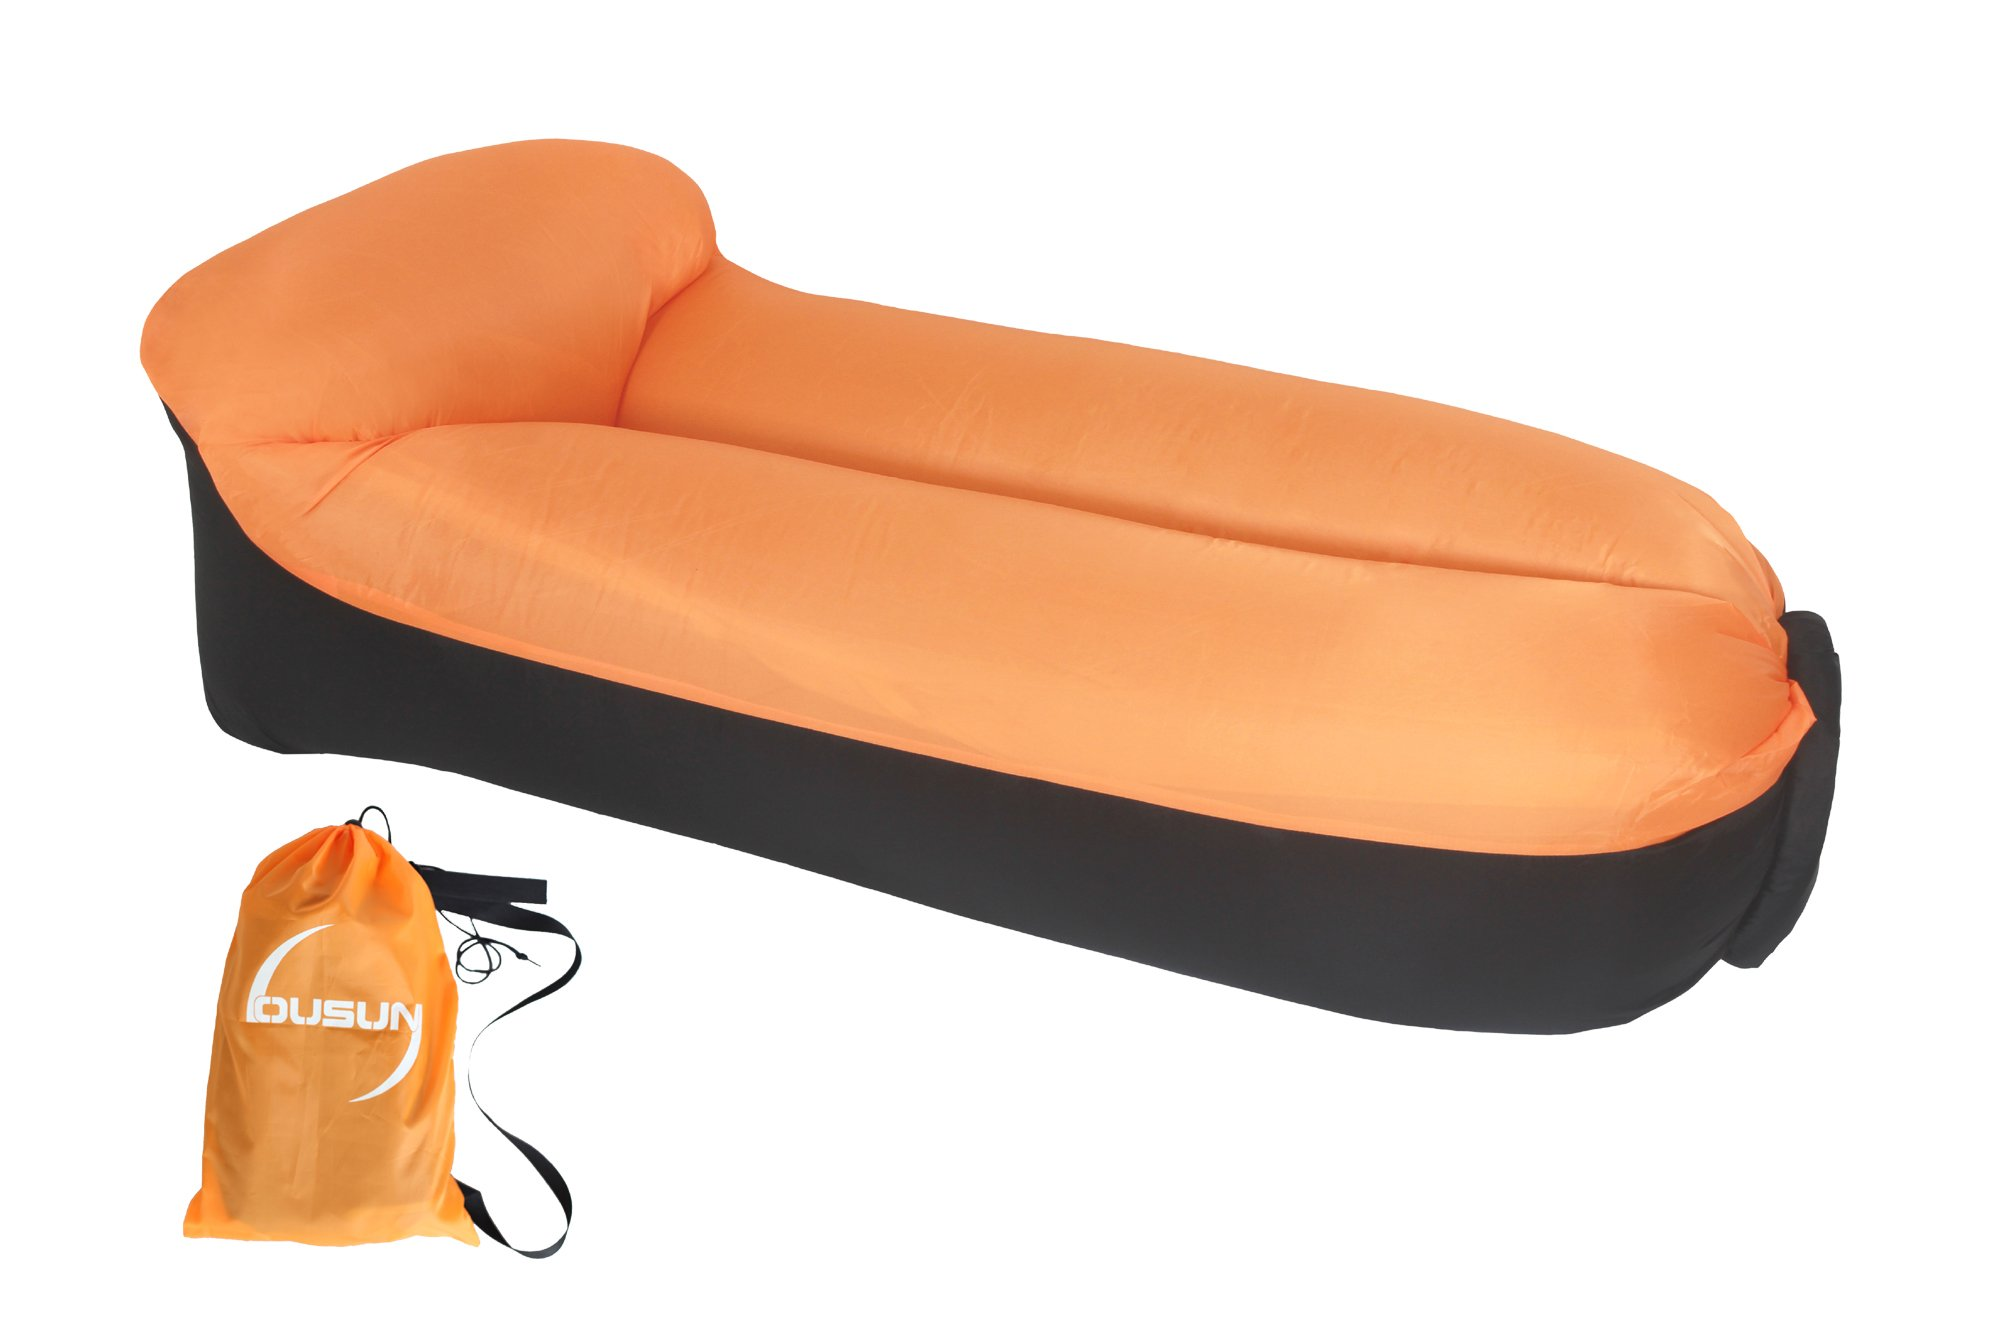 OUSUN inflatable lounge chair, airsofa, inflatable lounger, ideal for music festival and camping, inflatable air lounger-Orange